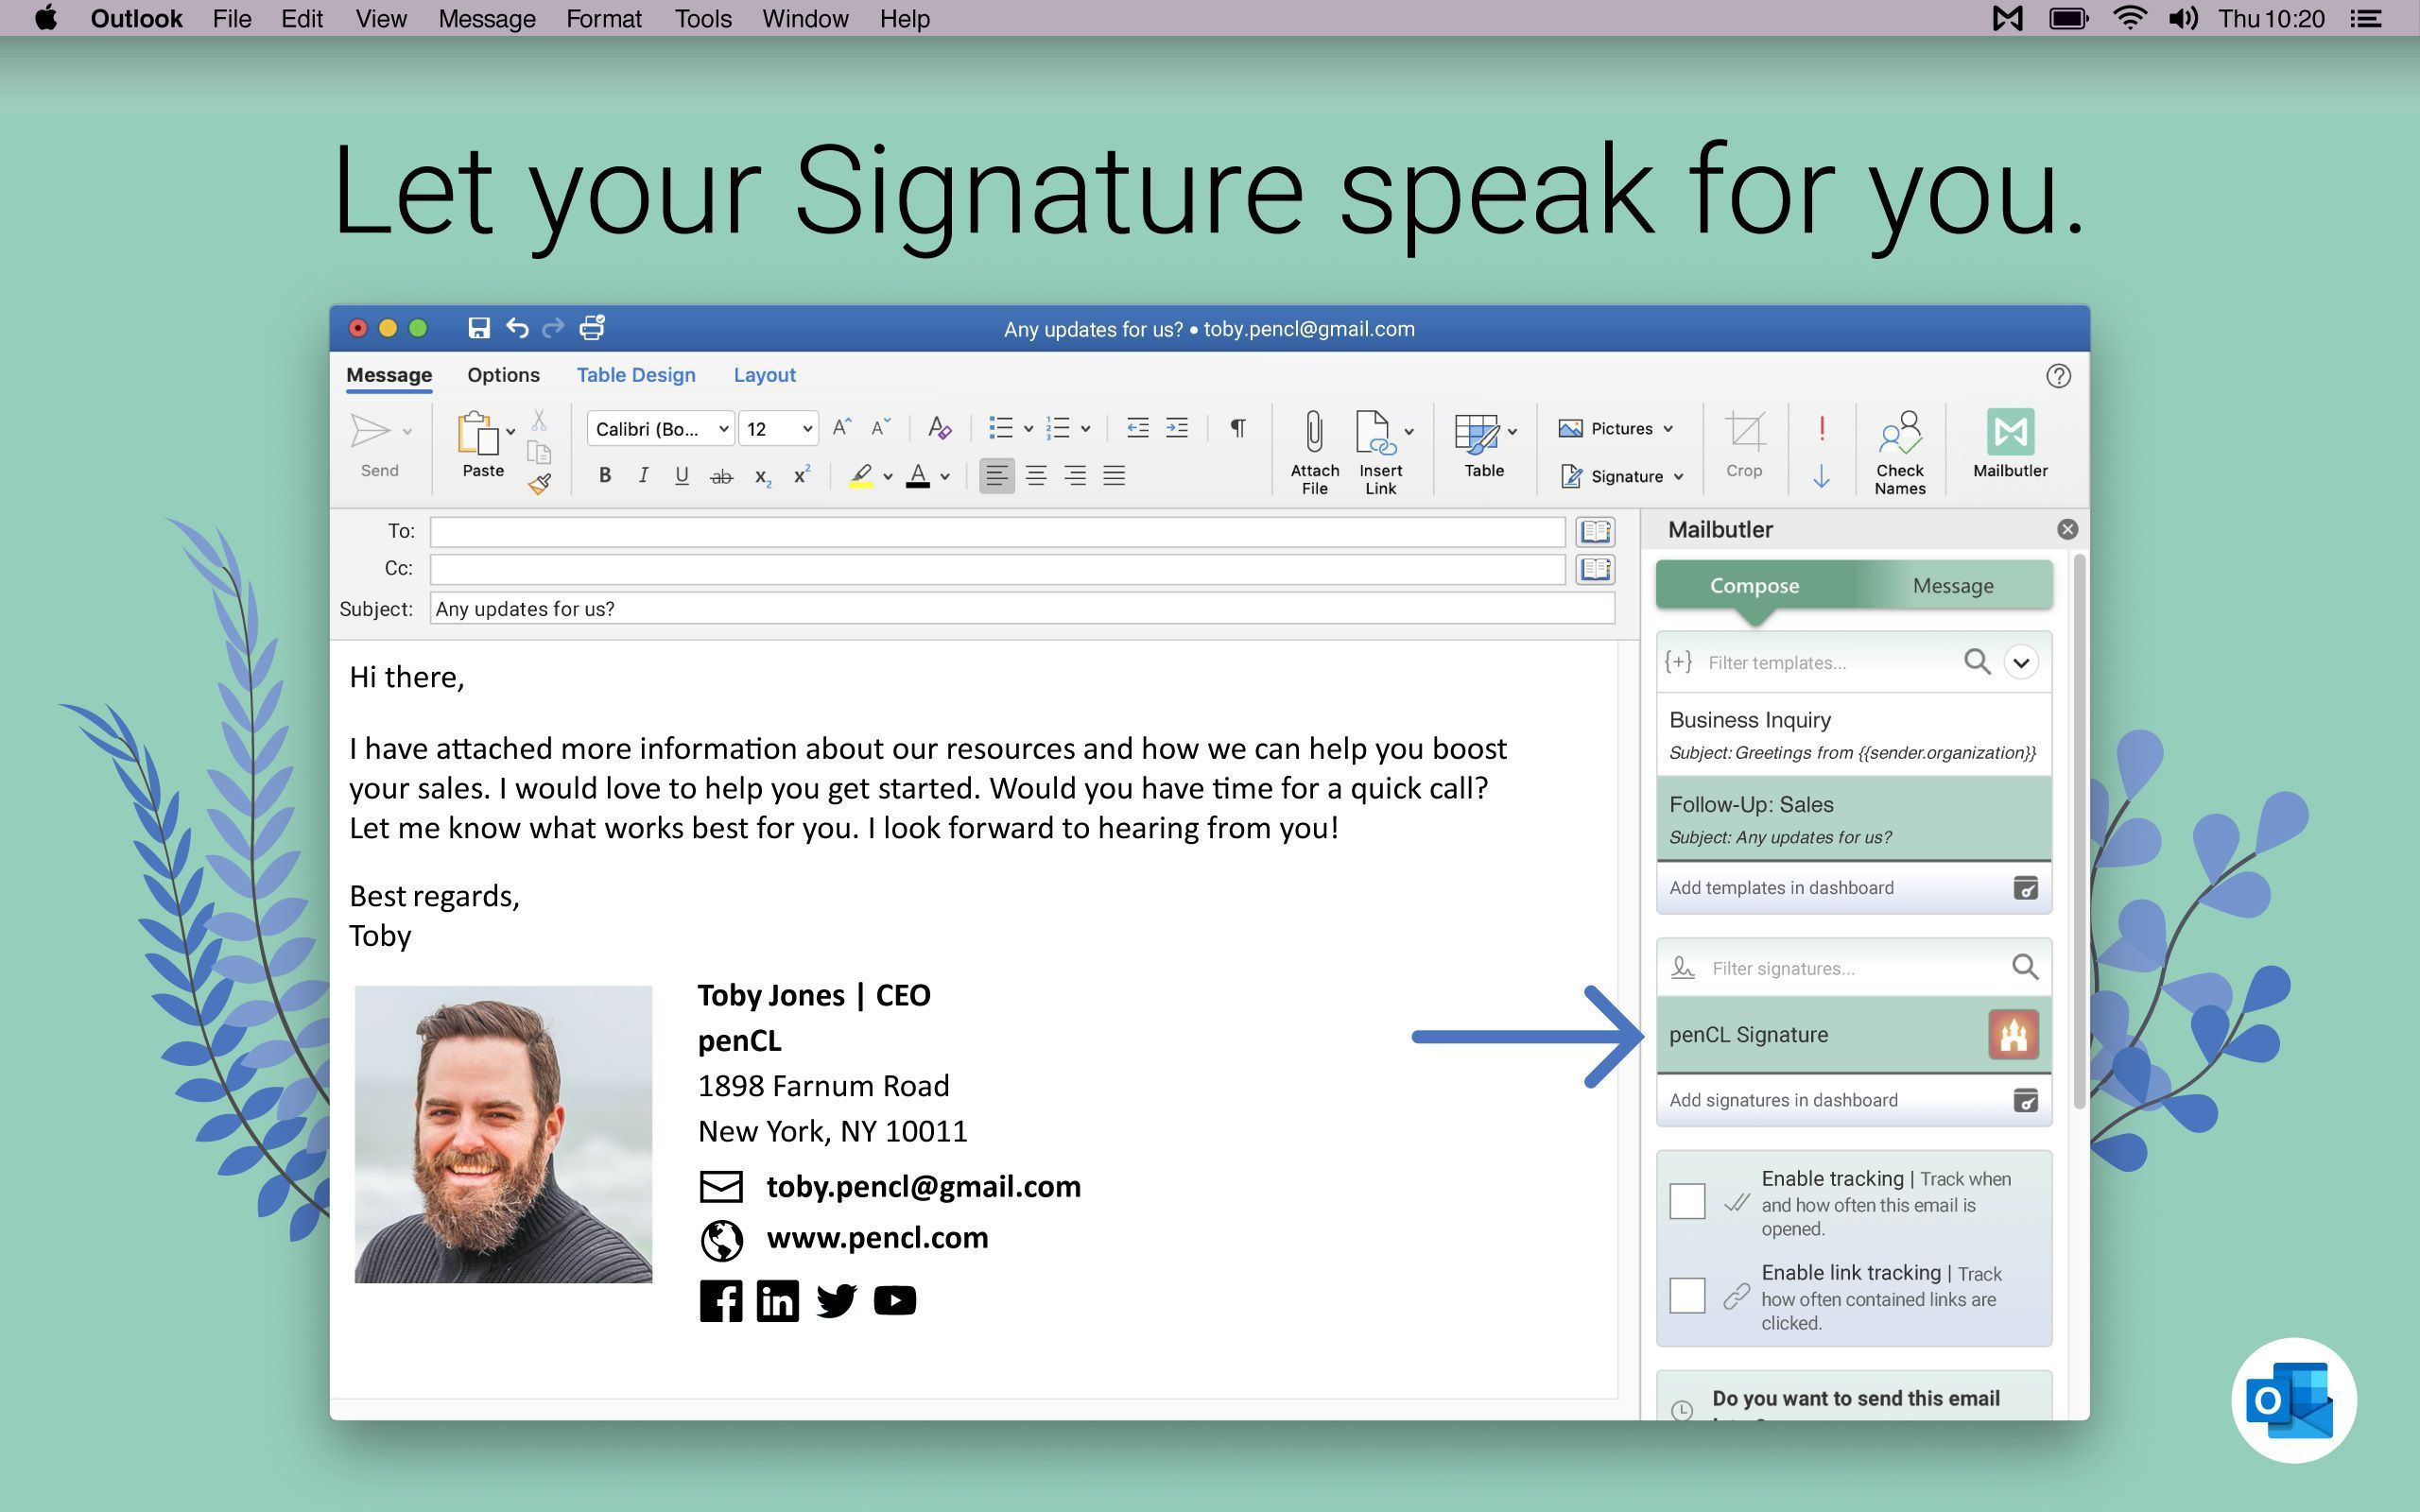 006 Incredible Email Signature Format For Outlook Design  Example Template MicrosoftFull